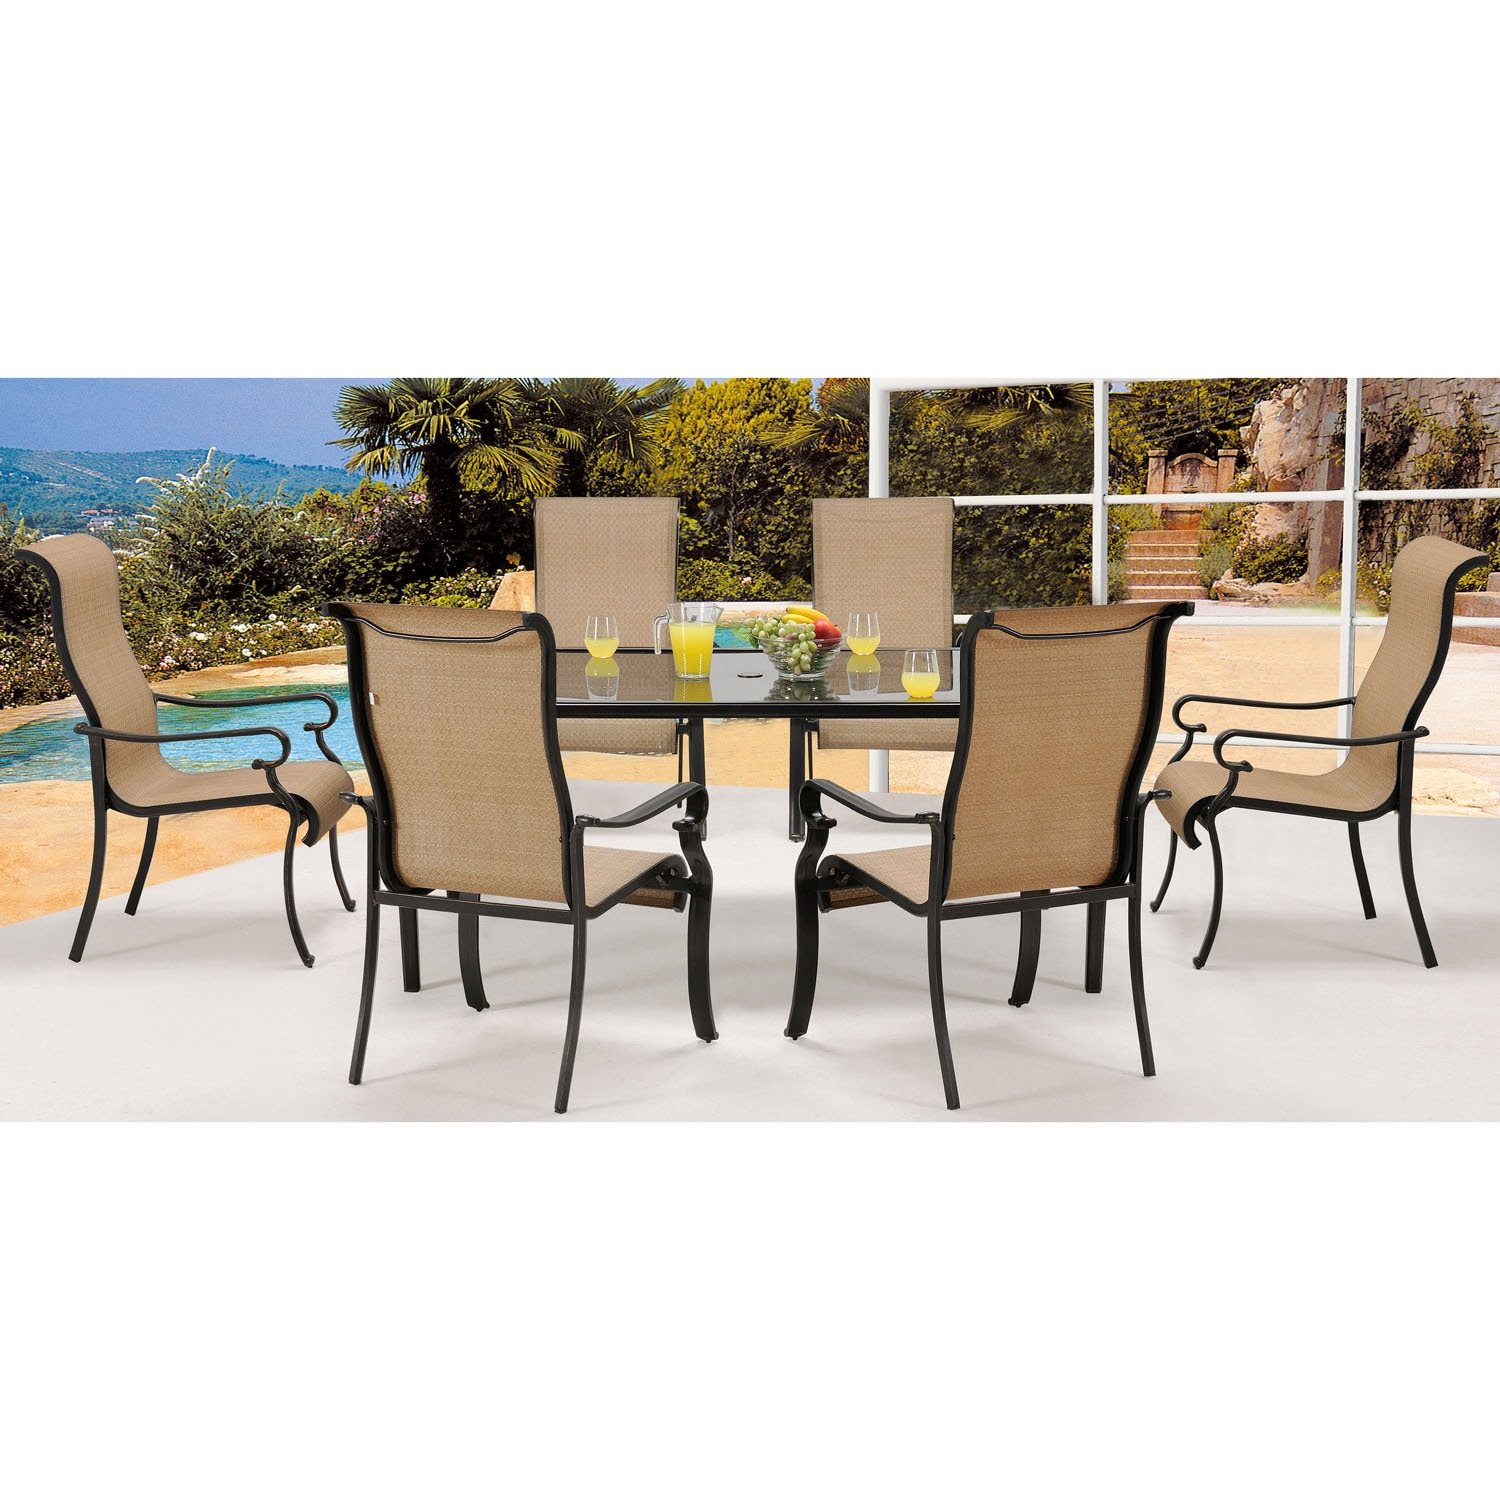 Hanover brigdn7pc gls brigantine tan aluminum 7 piece outdoor dining set with glass top table